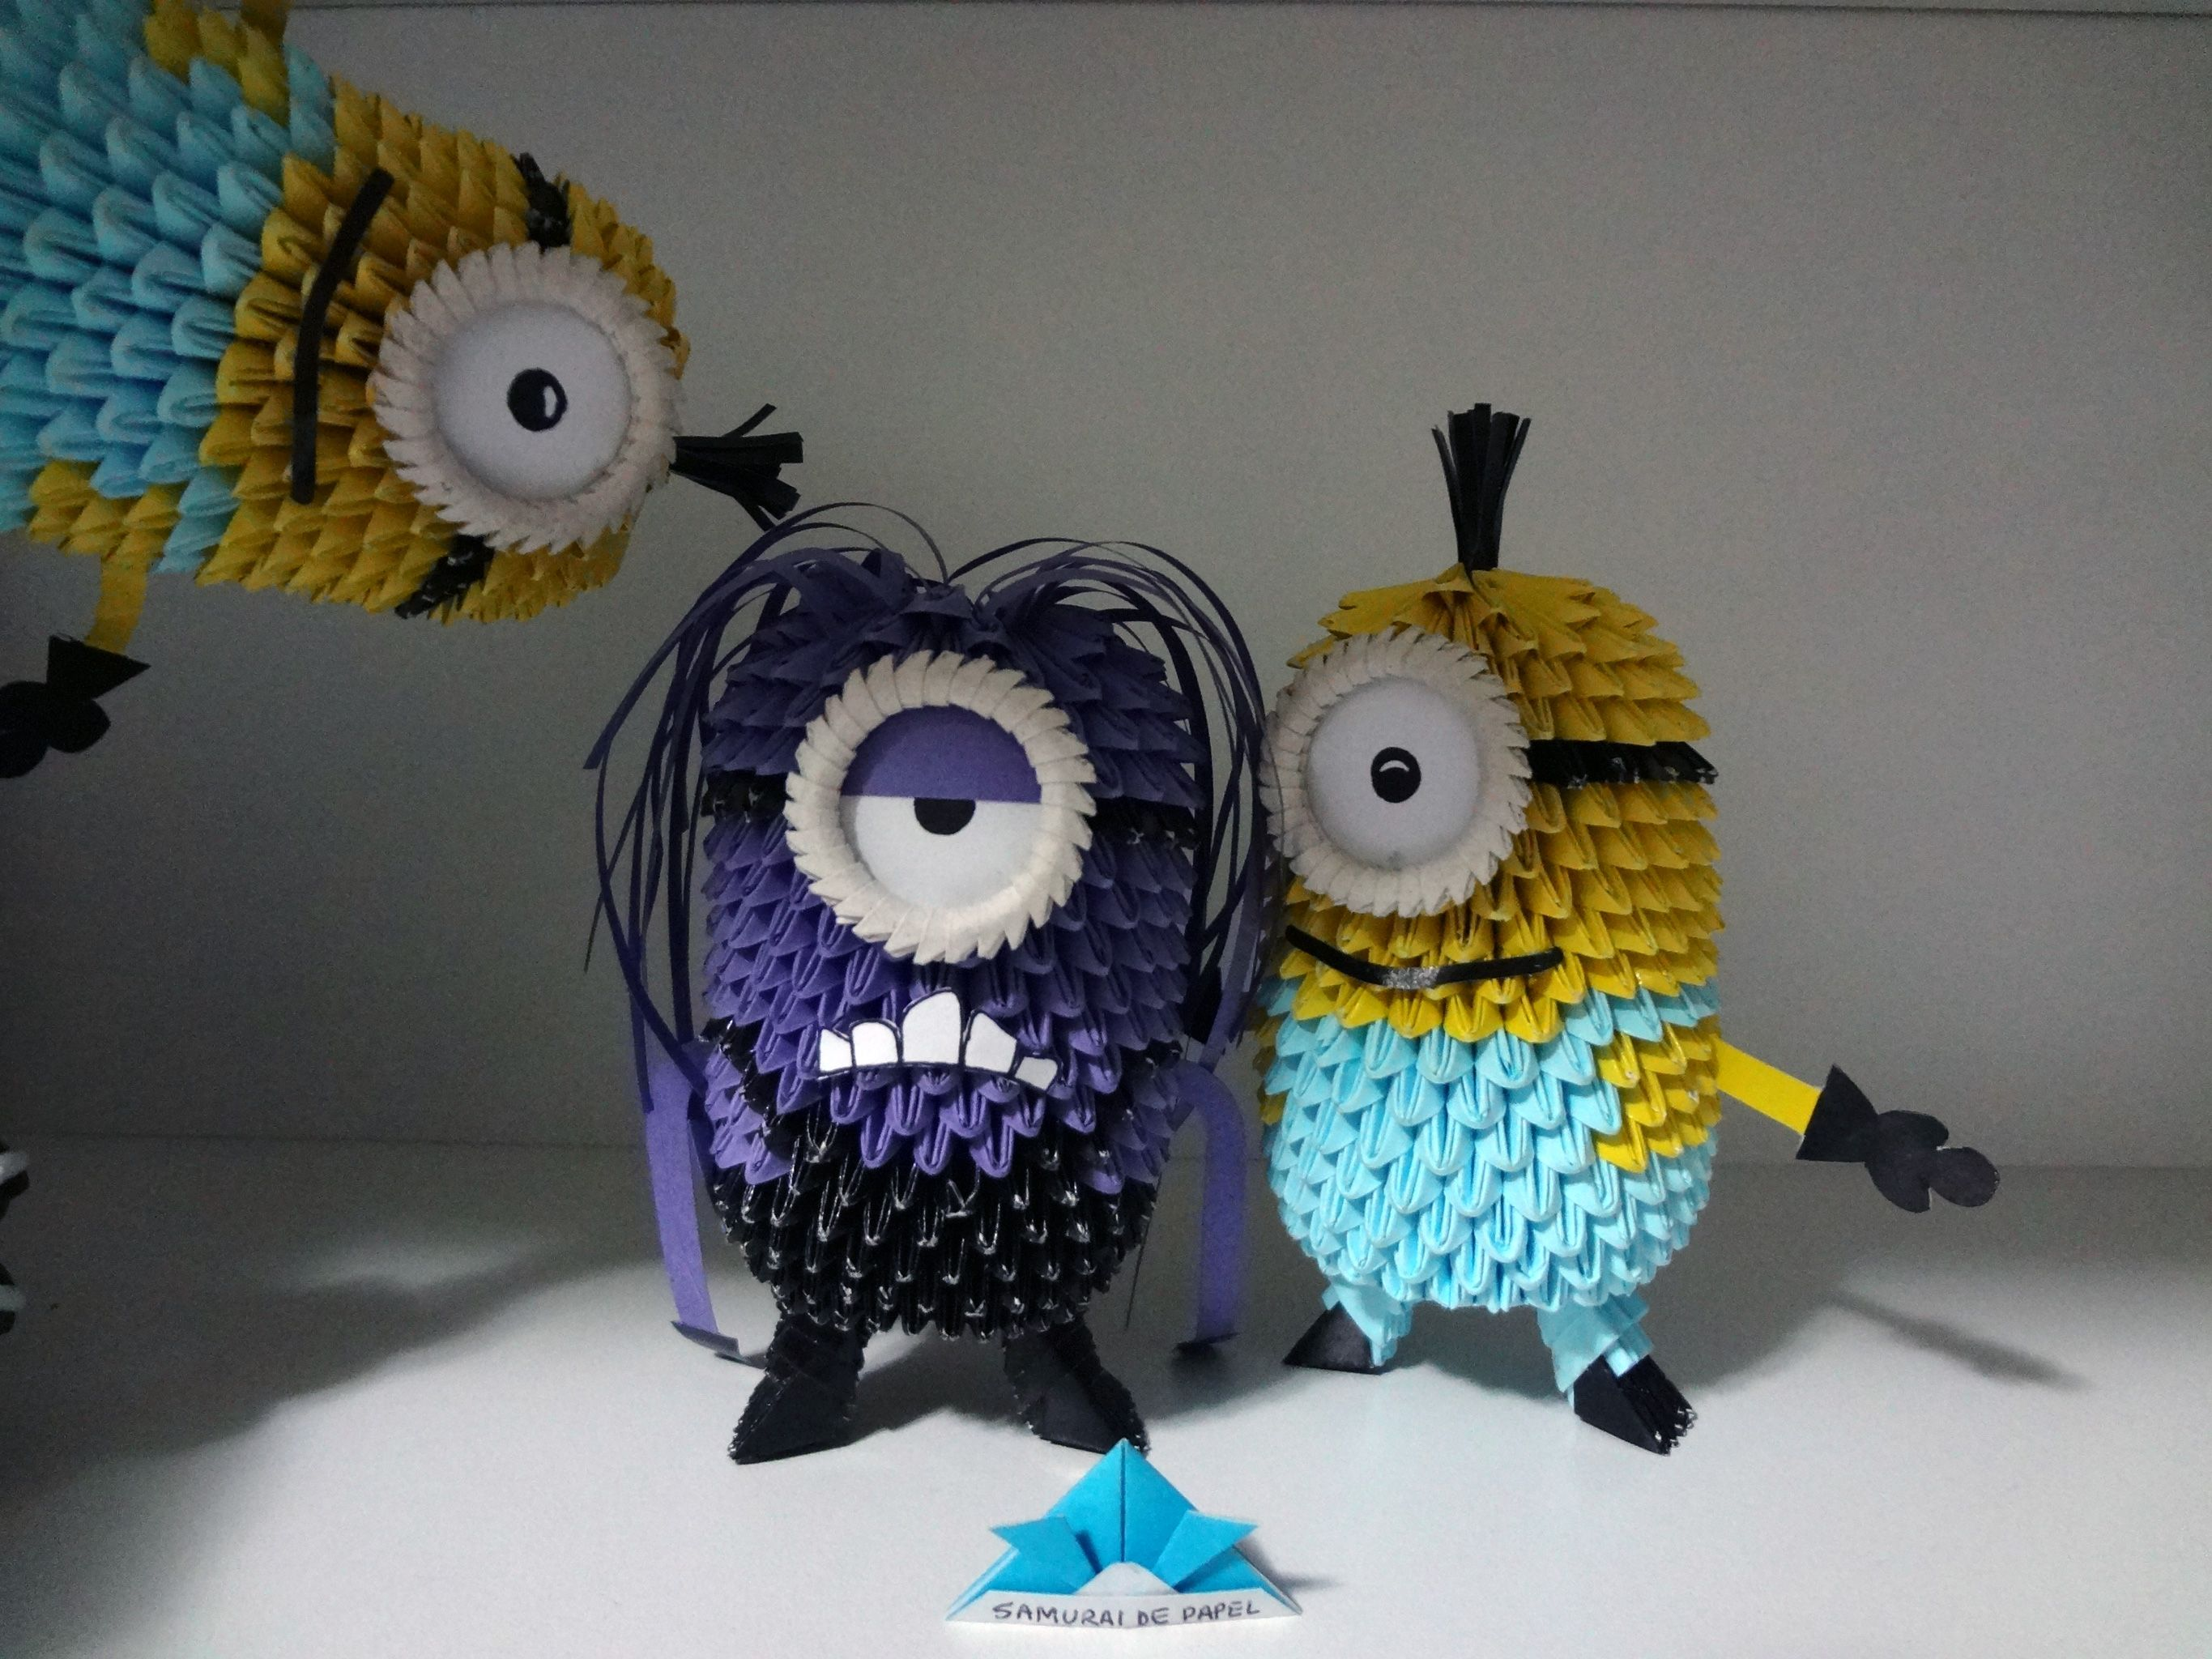 Origami 3d minions and evil minions 3d origami pinterest origami 3d minions and evil minions jeuxipadfo Images